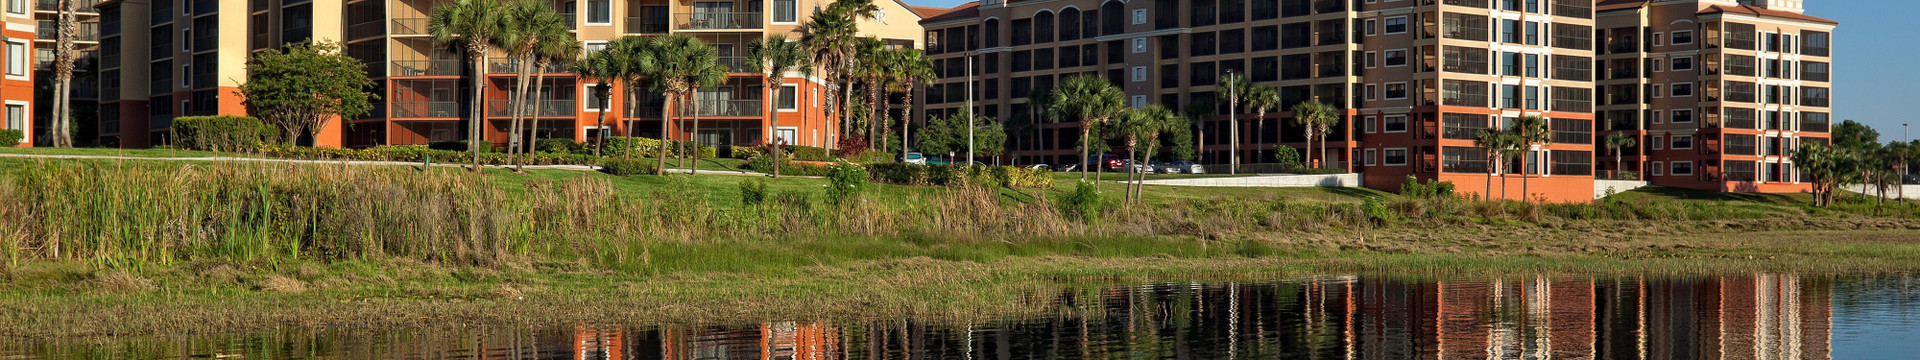 An Orlando Hotel Near Disney World - Orlando Hotel Deals